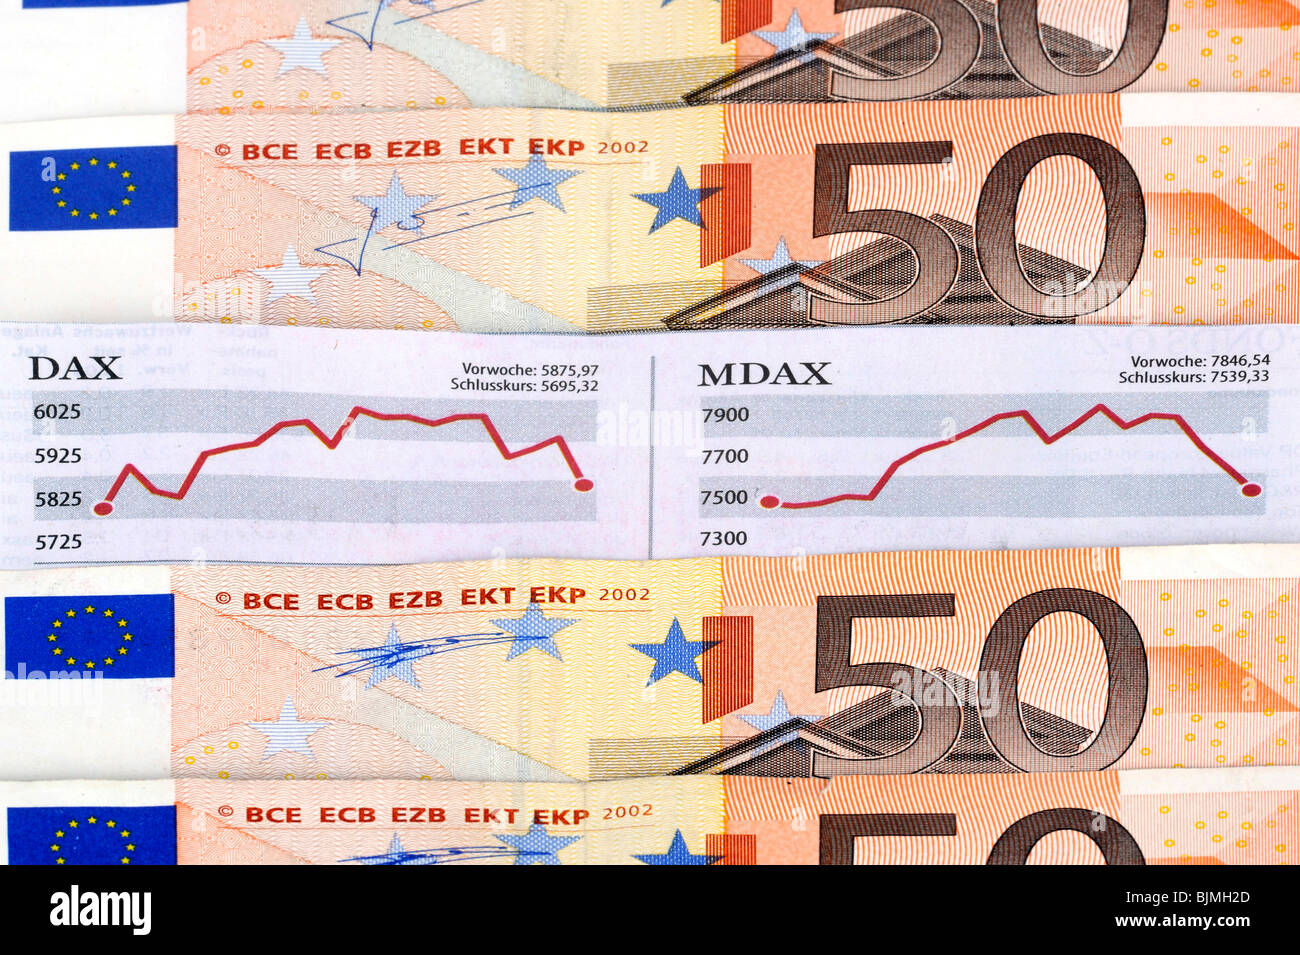 DAX, MDAX stock cam 50 euro banknotes, bills, symbolic image for stock market gains, stock market losses - Stock Image